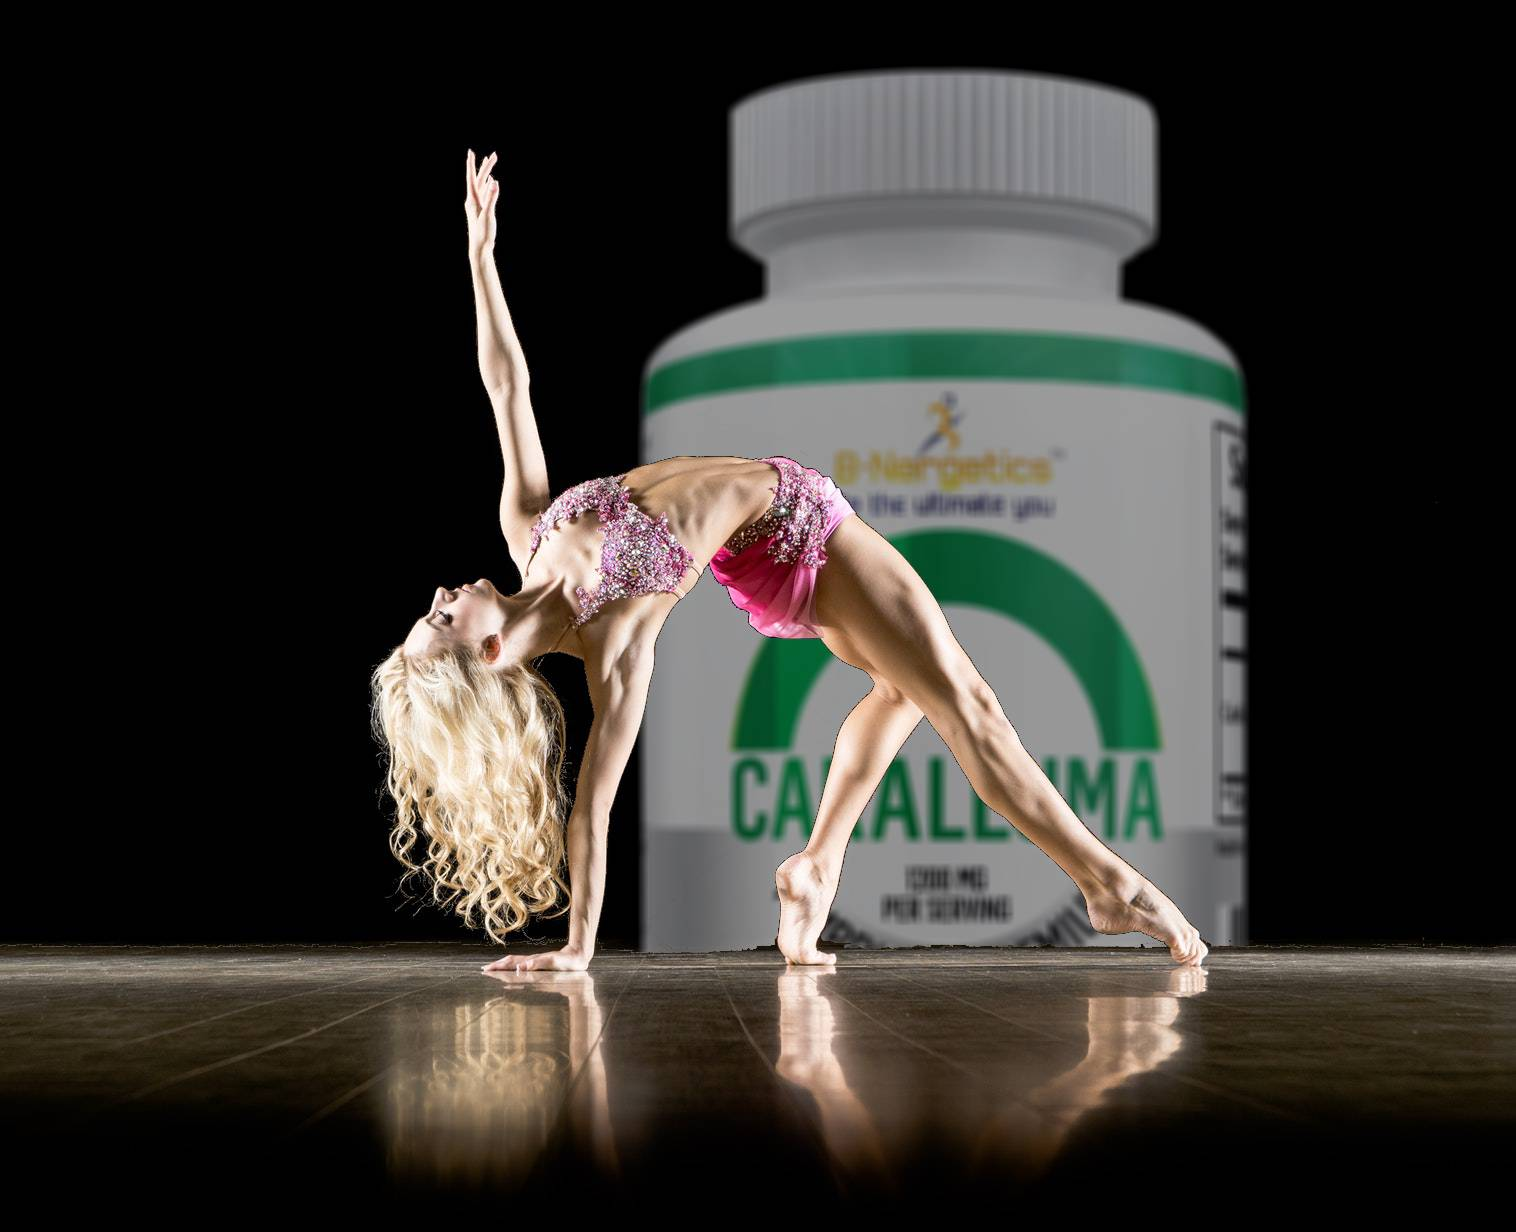 How to use Caralluma Fimbriata and Why